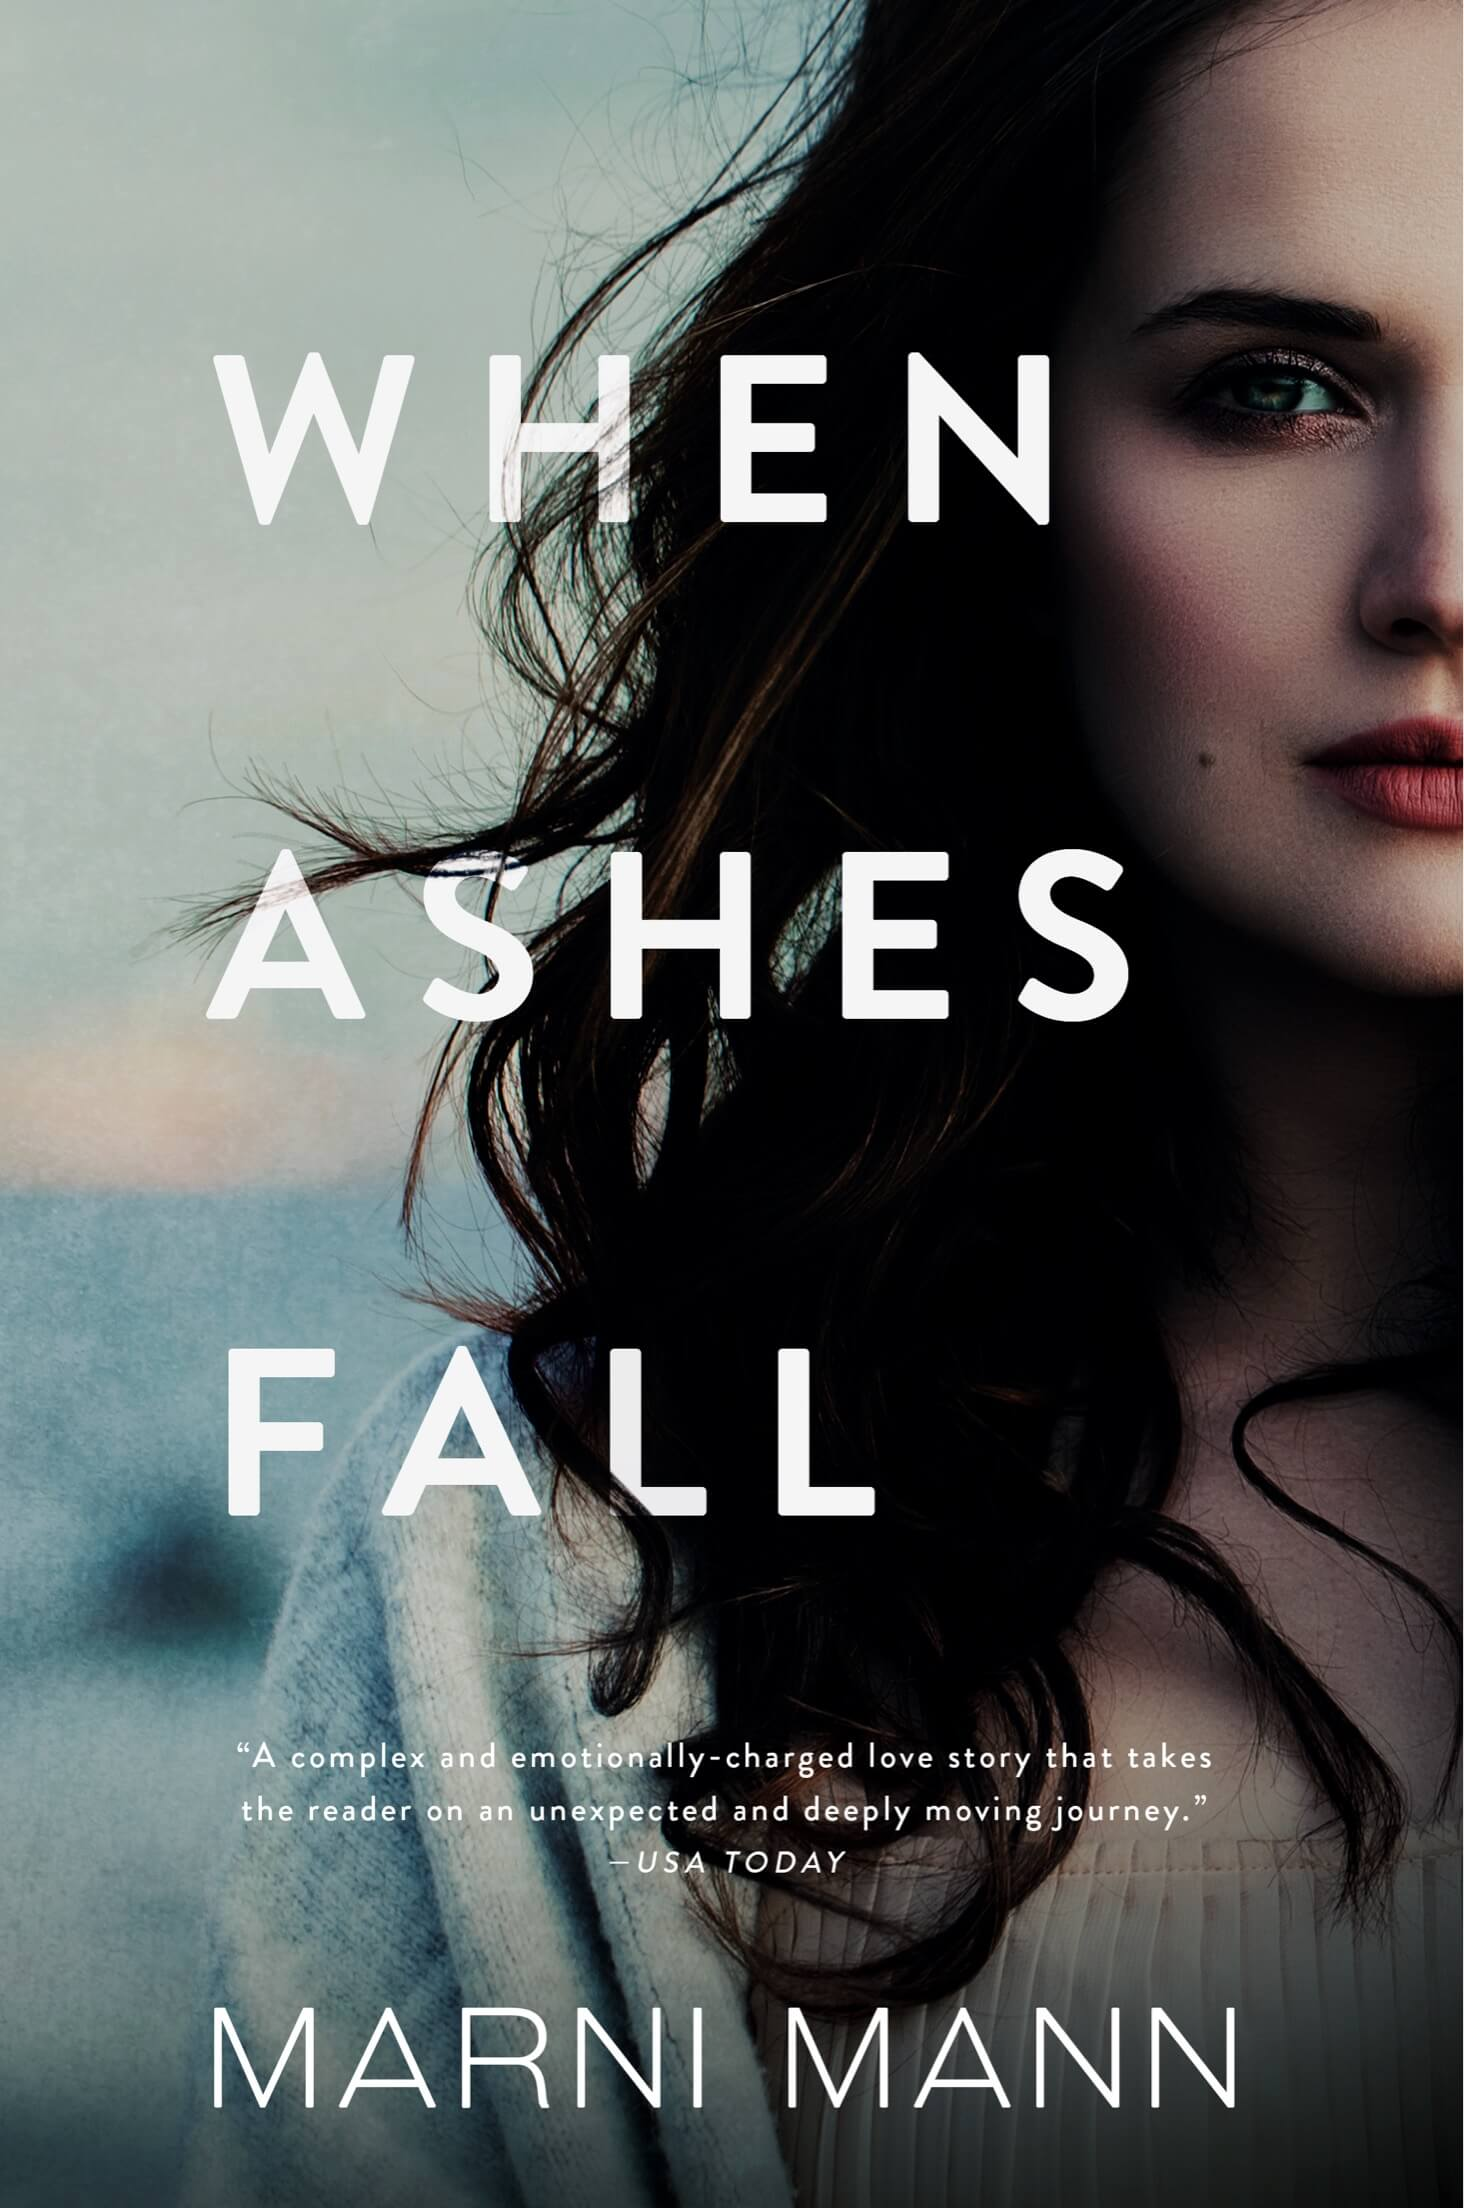 Release Blitz * When Ashes Fall by Marni Mann * Blog Tour * 5 Star Book Review